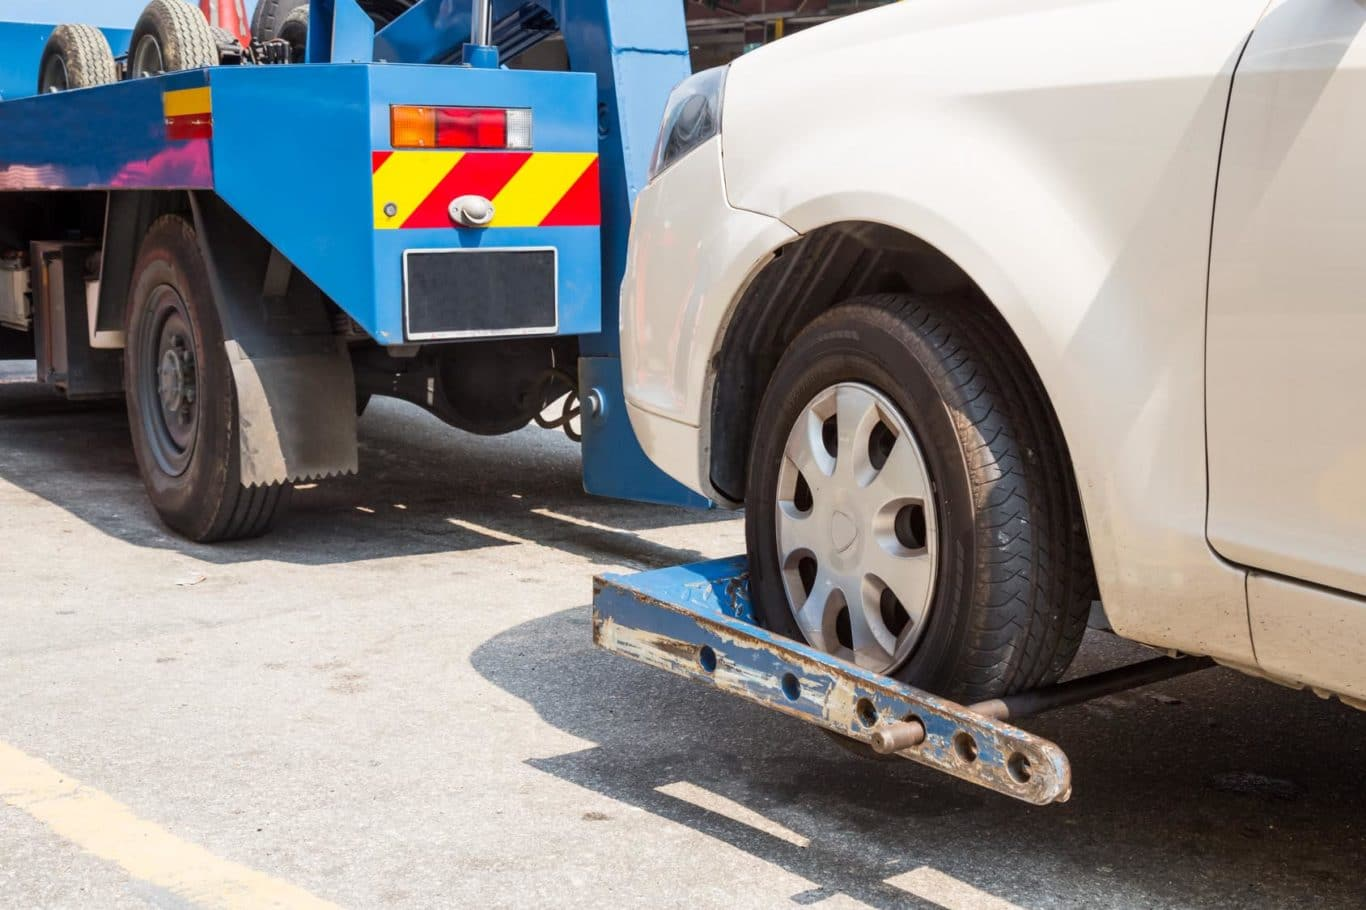 Booterstown expert Car Towing services